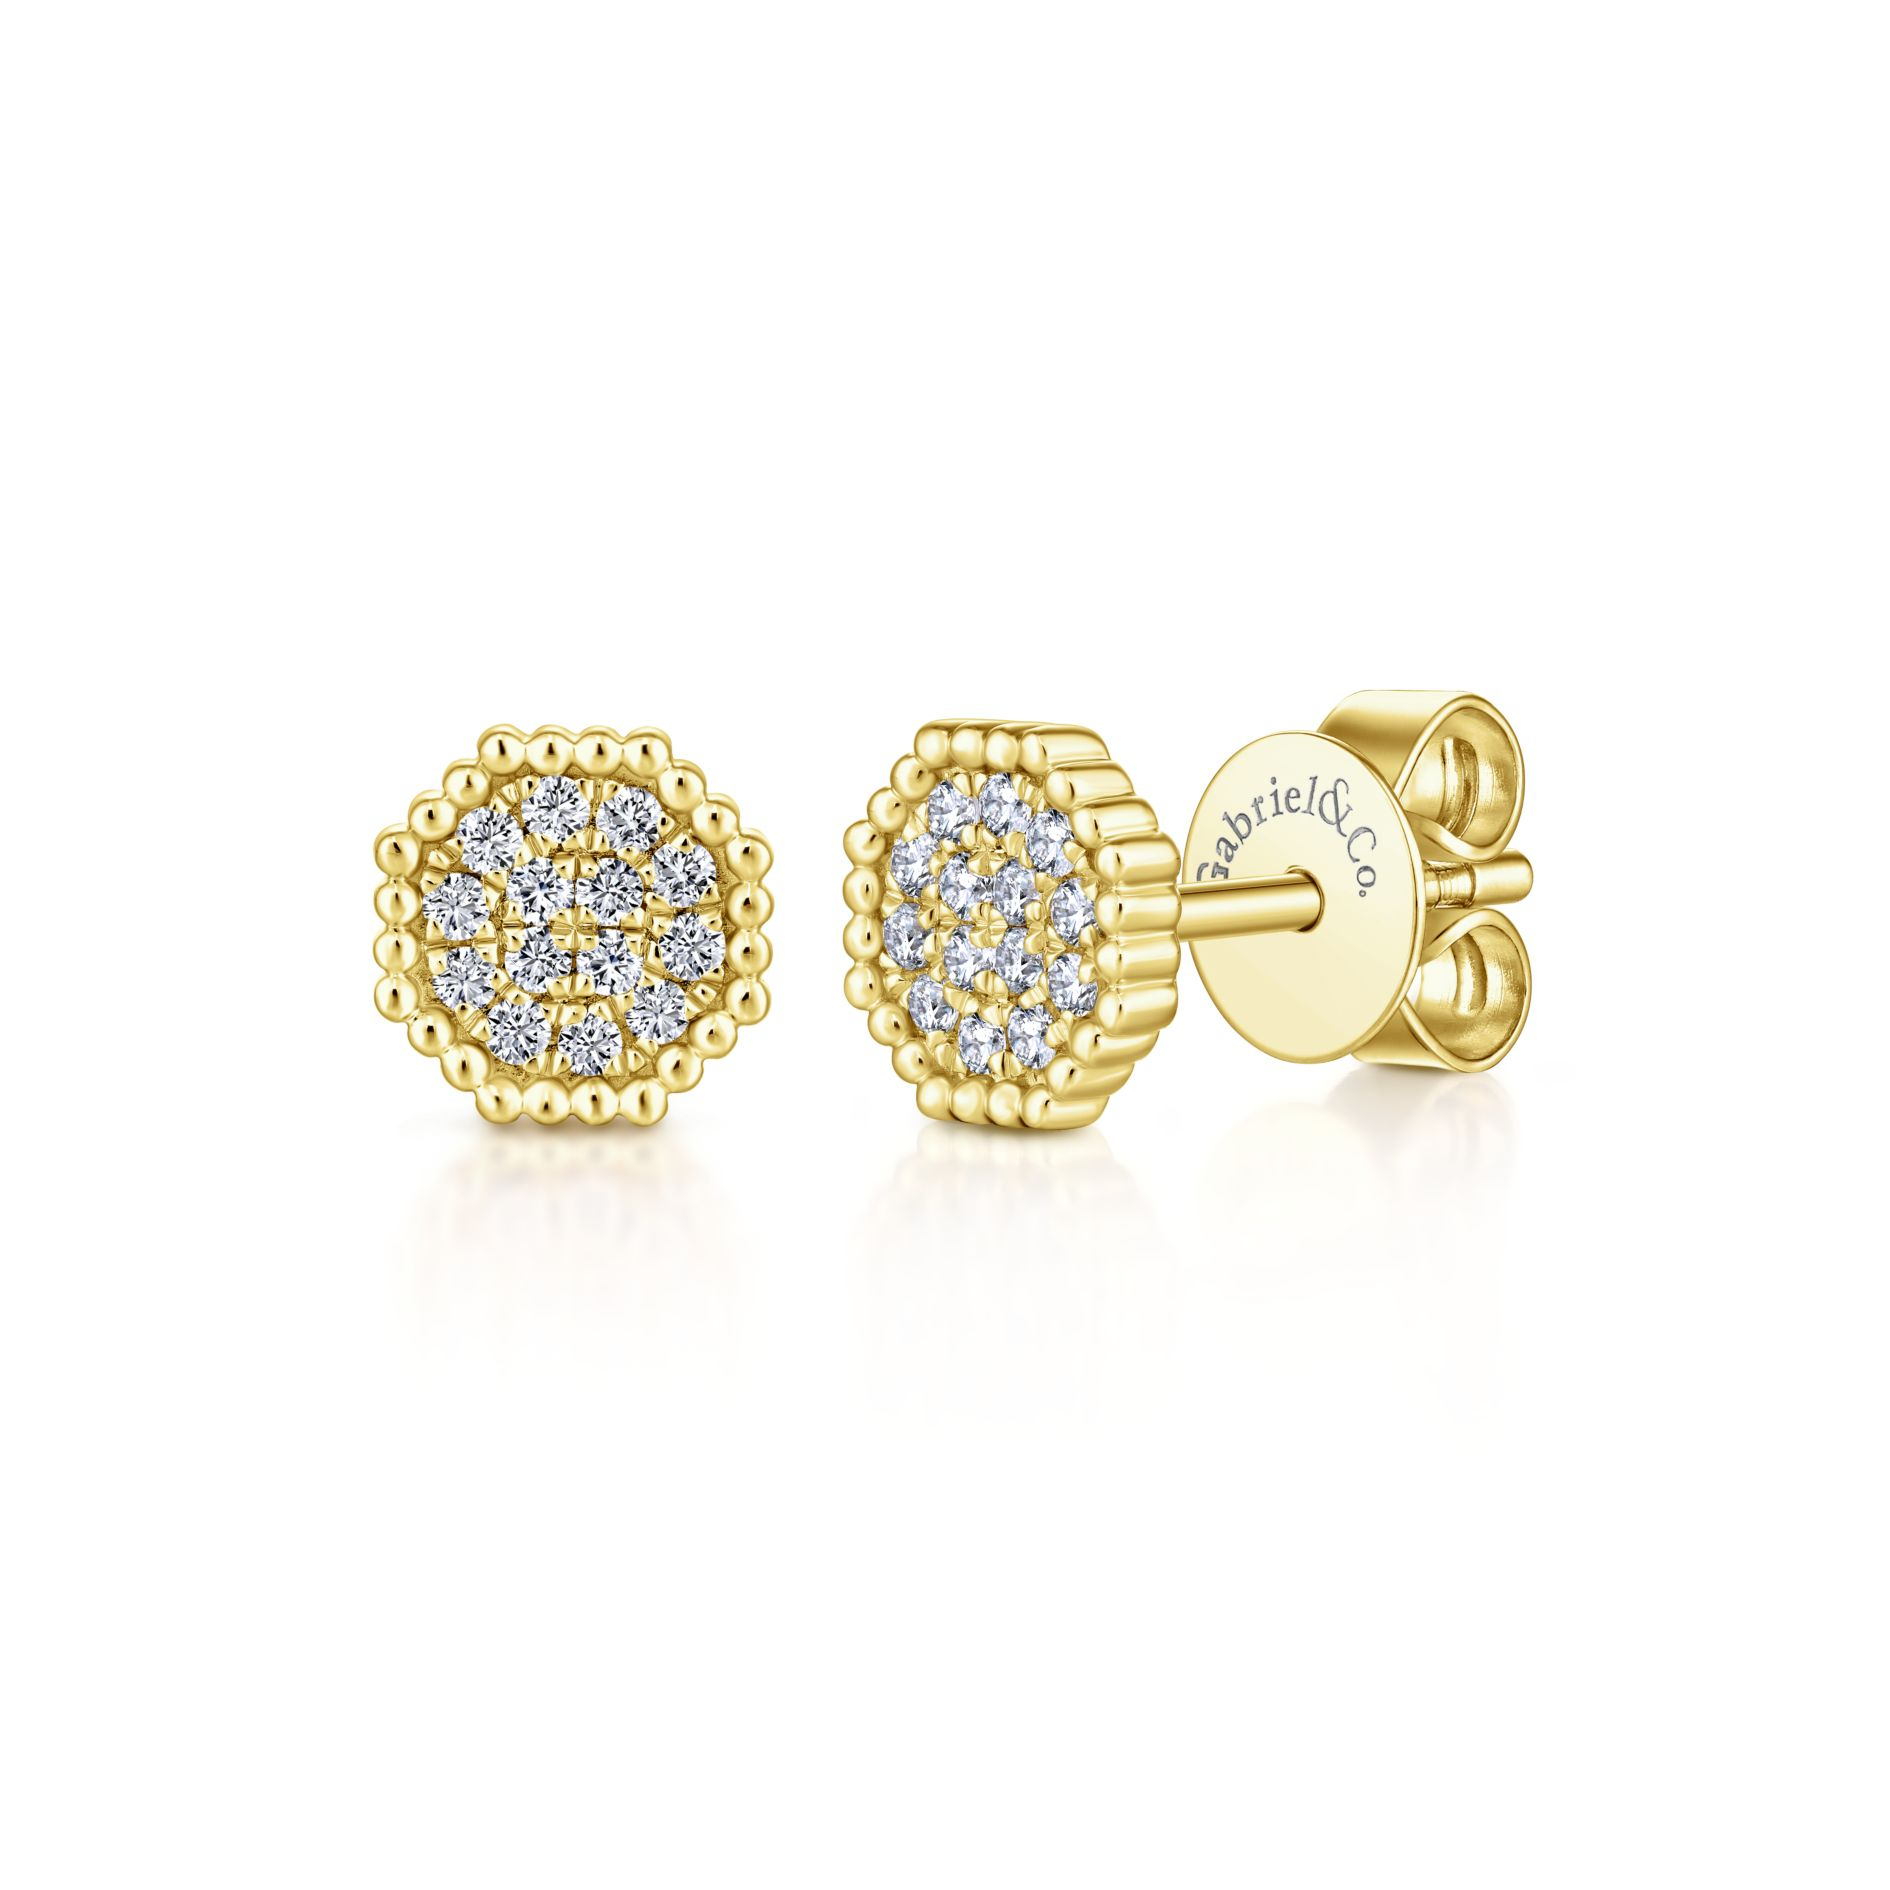 Earrings - YELLOW GOLD STUD DIAMOND EARRINGS